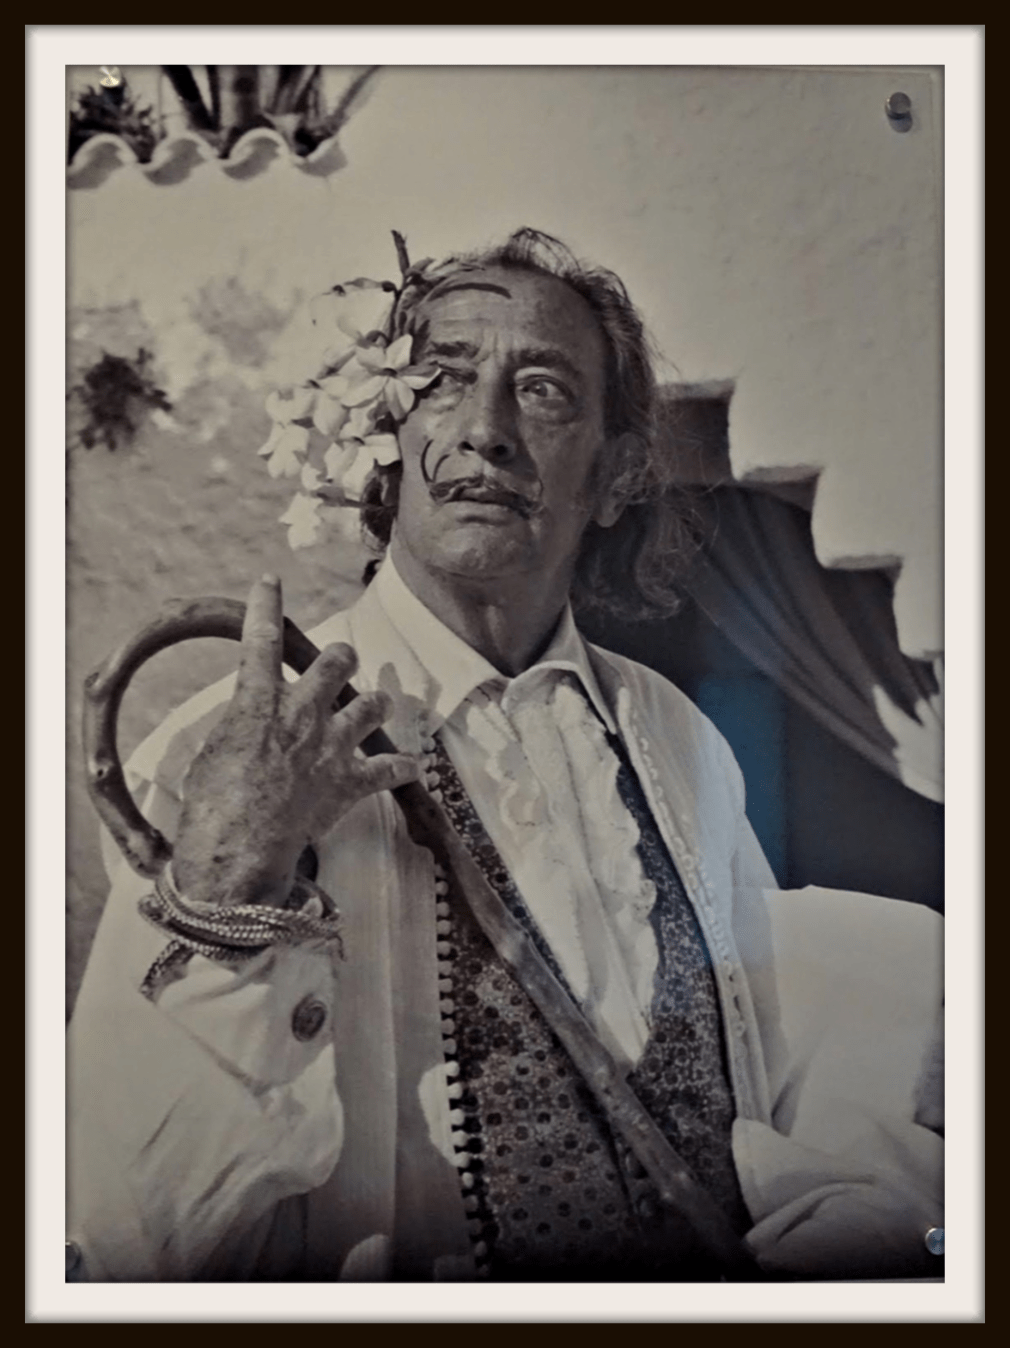 Salvador Dali portrait in The Dali Museum in St. Petersburg, Florida